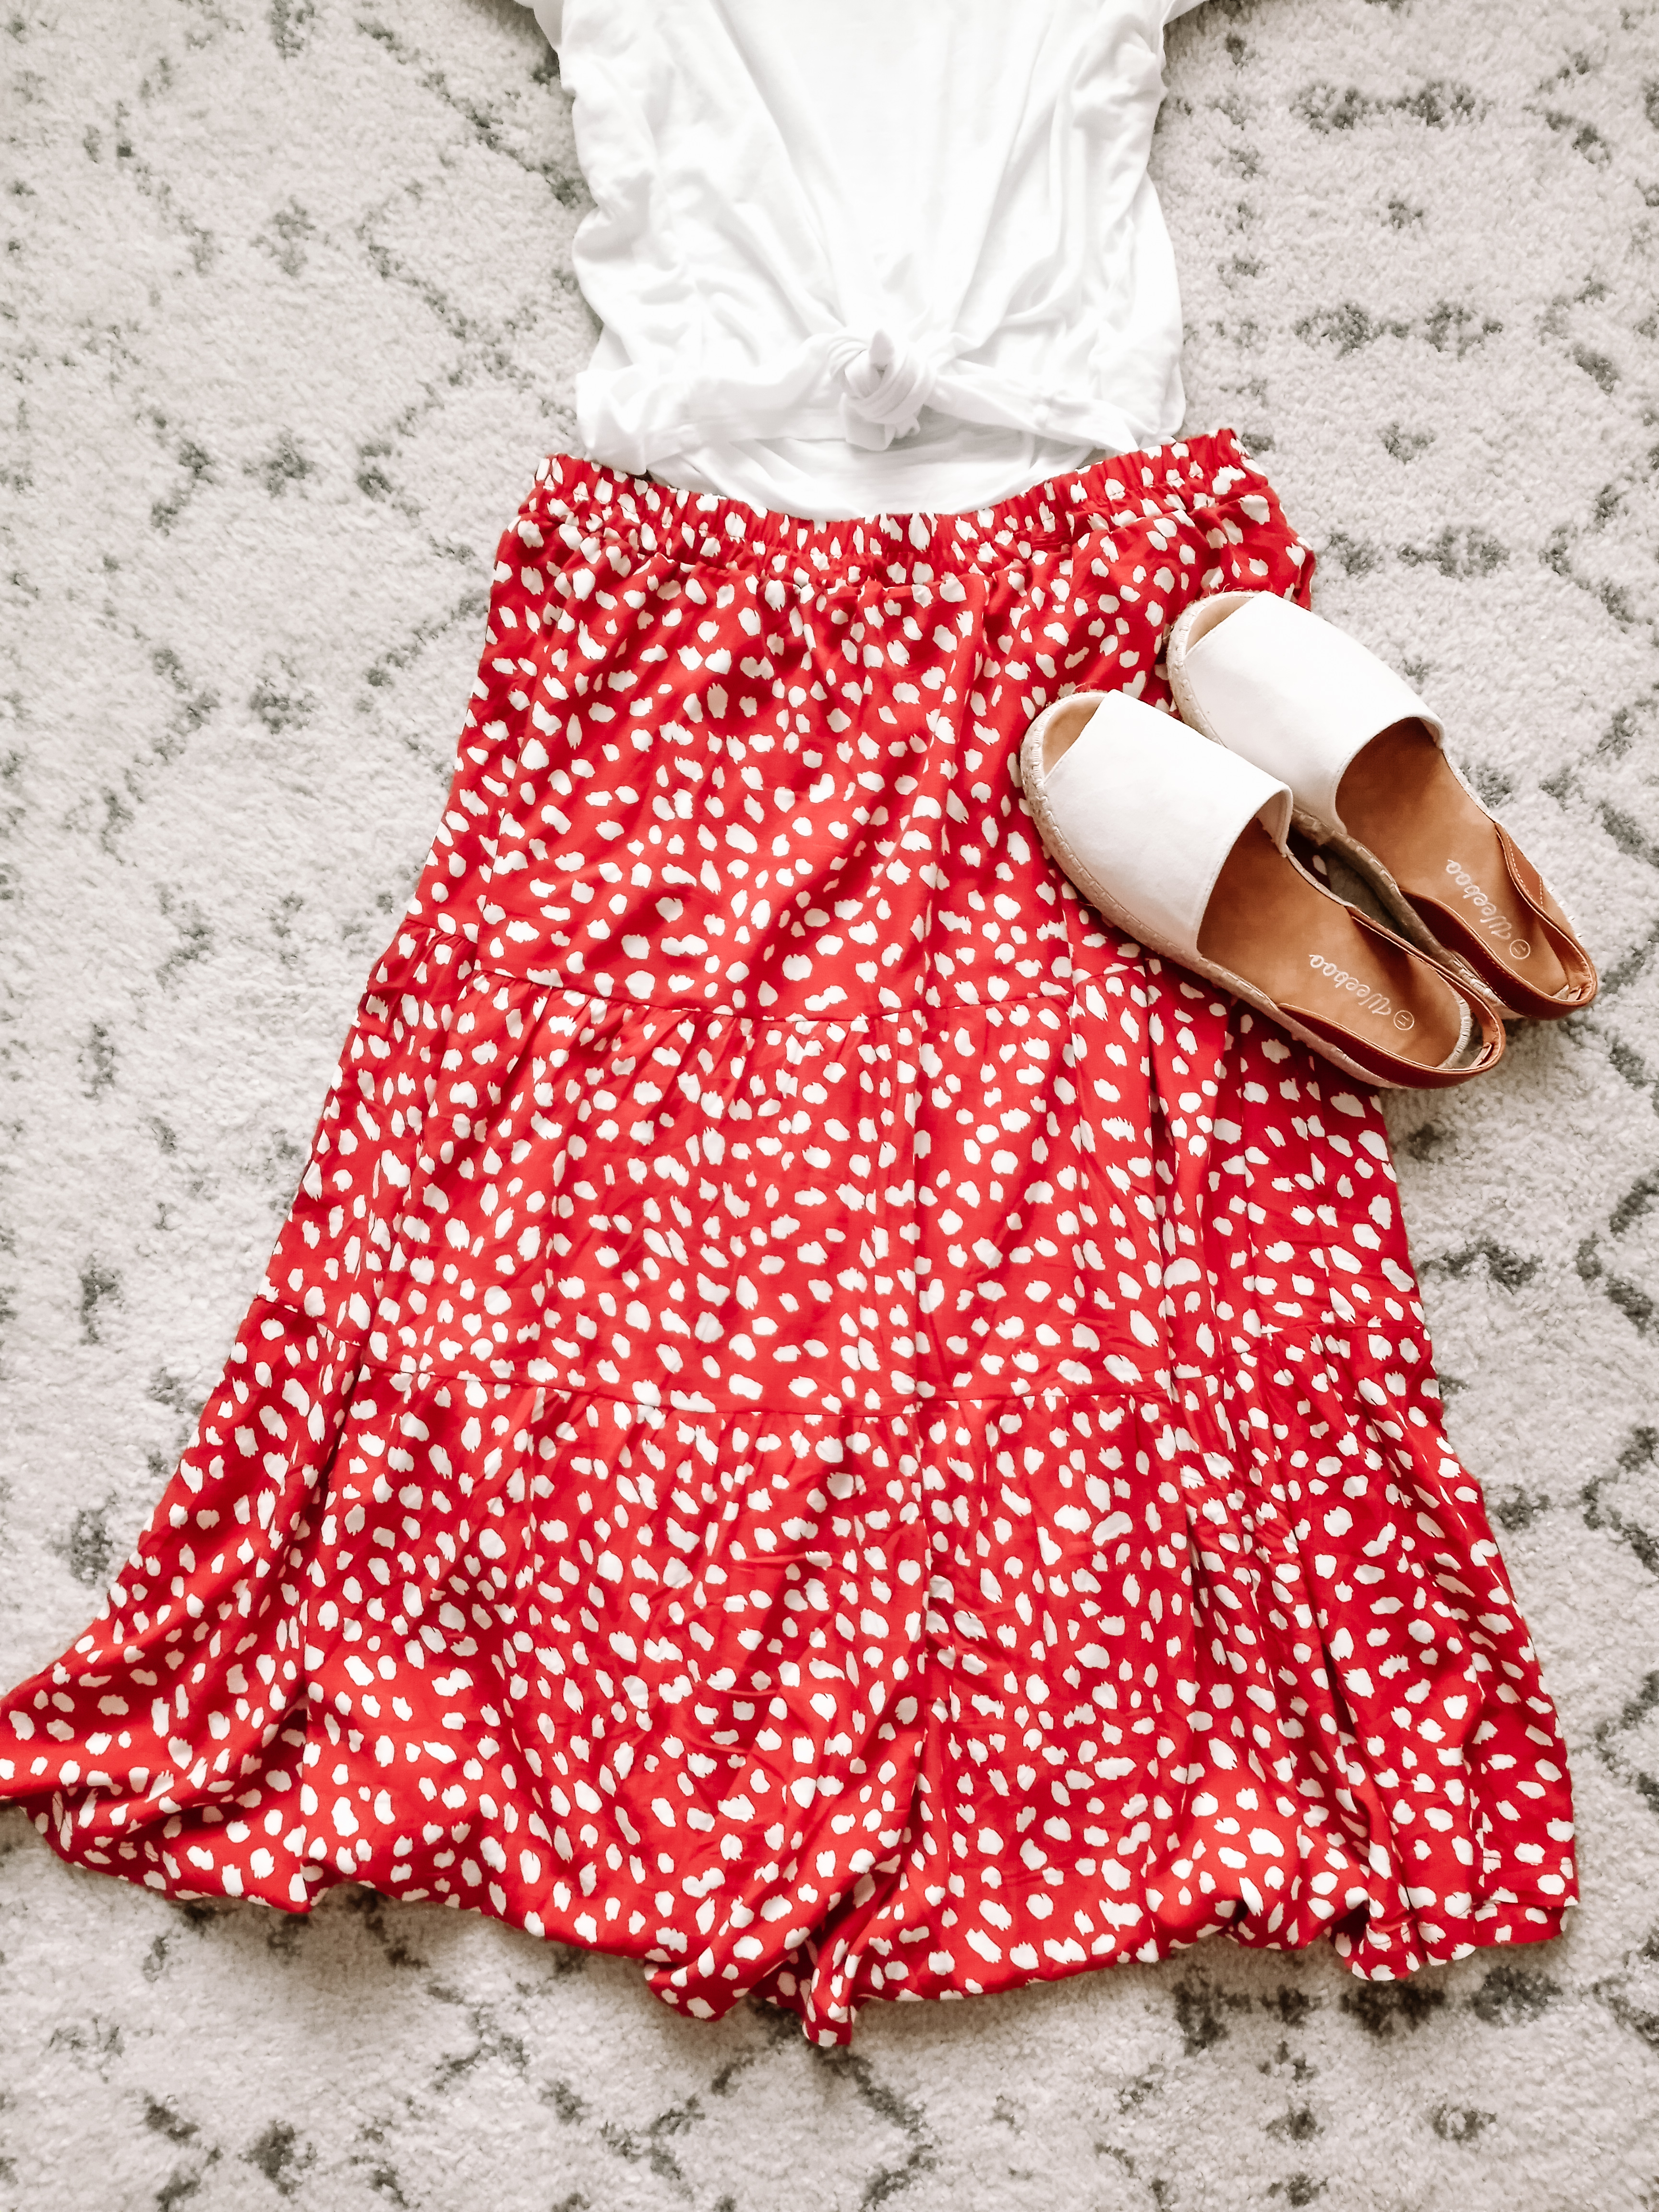 Rust red skirt perfect for moms with white tee and natural espadrilles